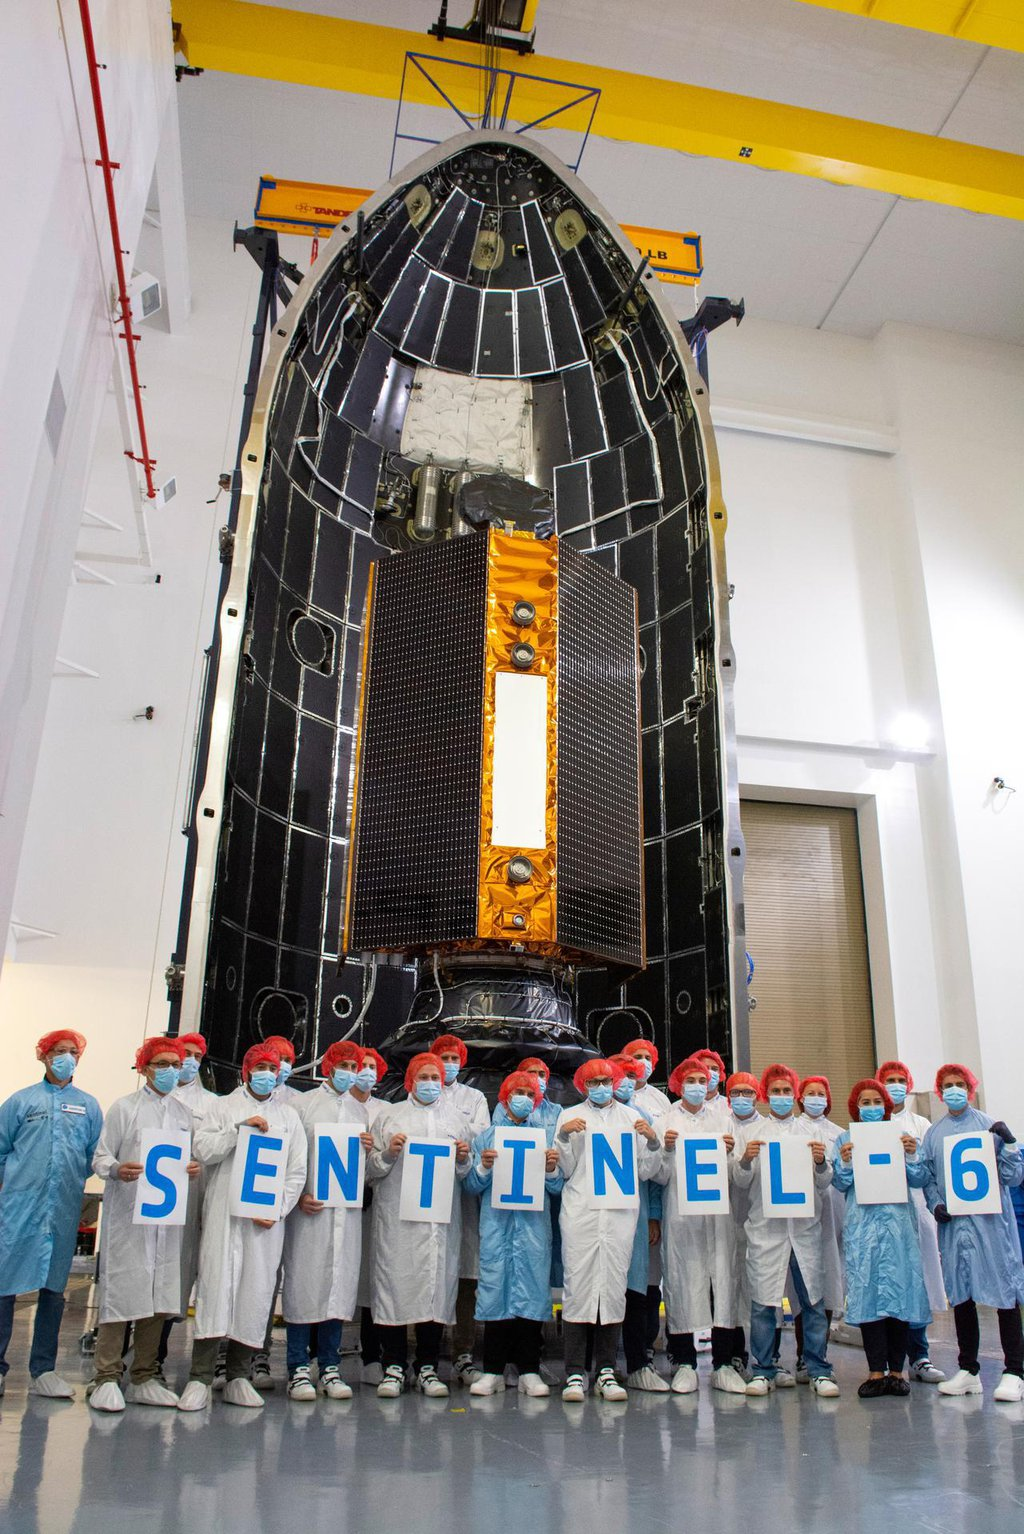 Technicians and engineers working on the Sentinel-6 Michael Freilich satellite pose in front of the spacecraft in its protective nosecone, or payload fairing, at Vandenberg Air Force Base in California.